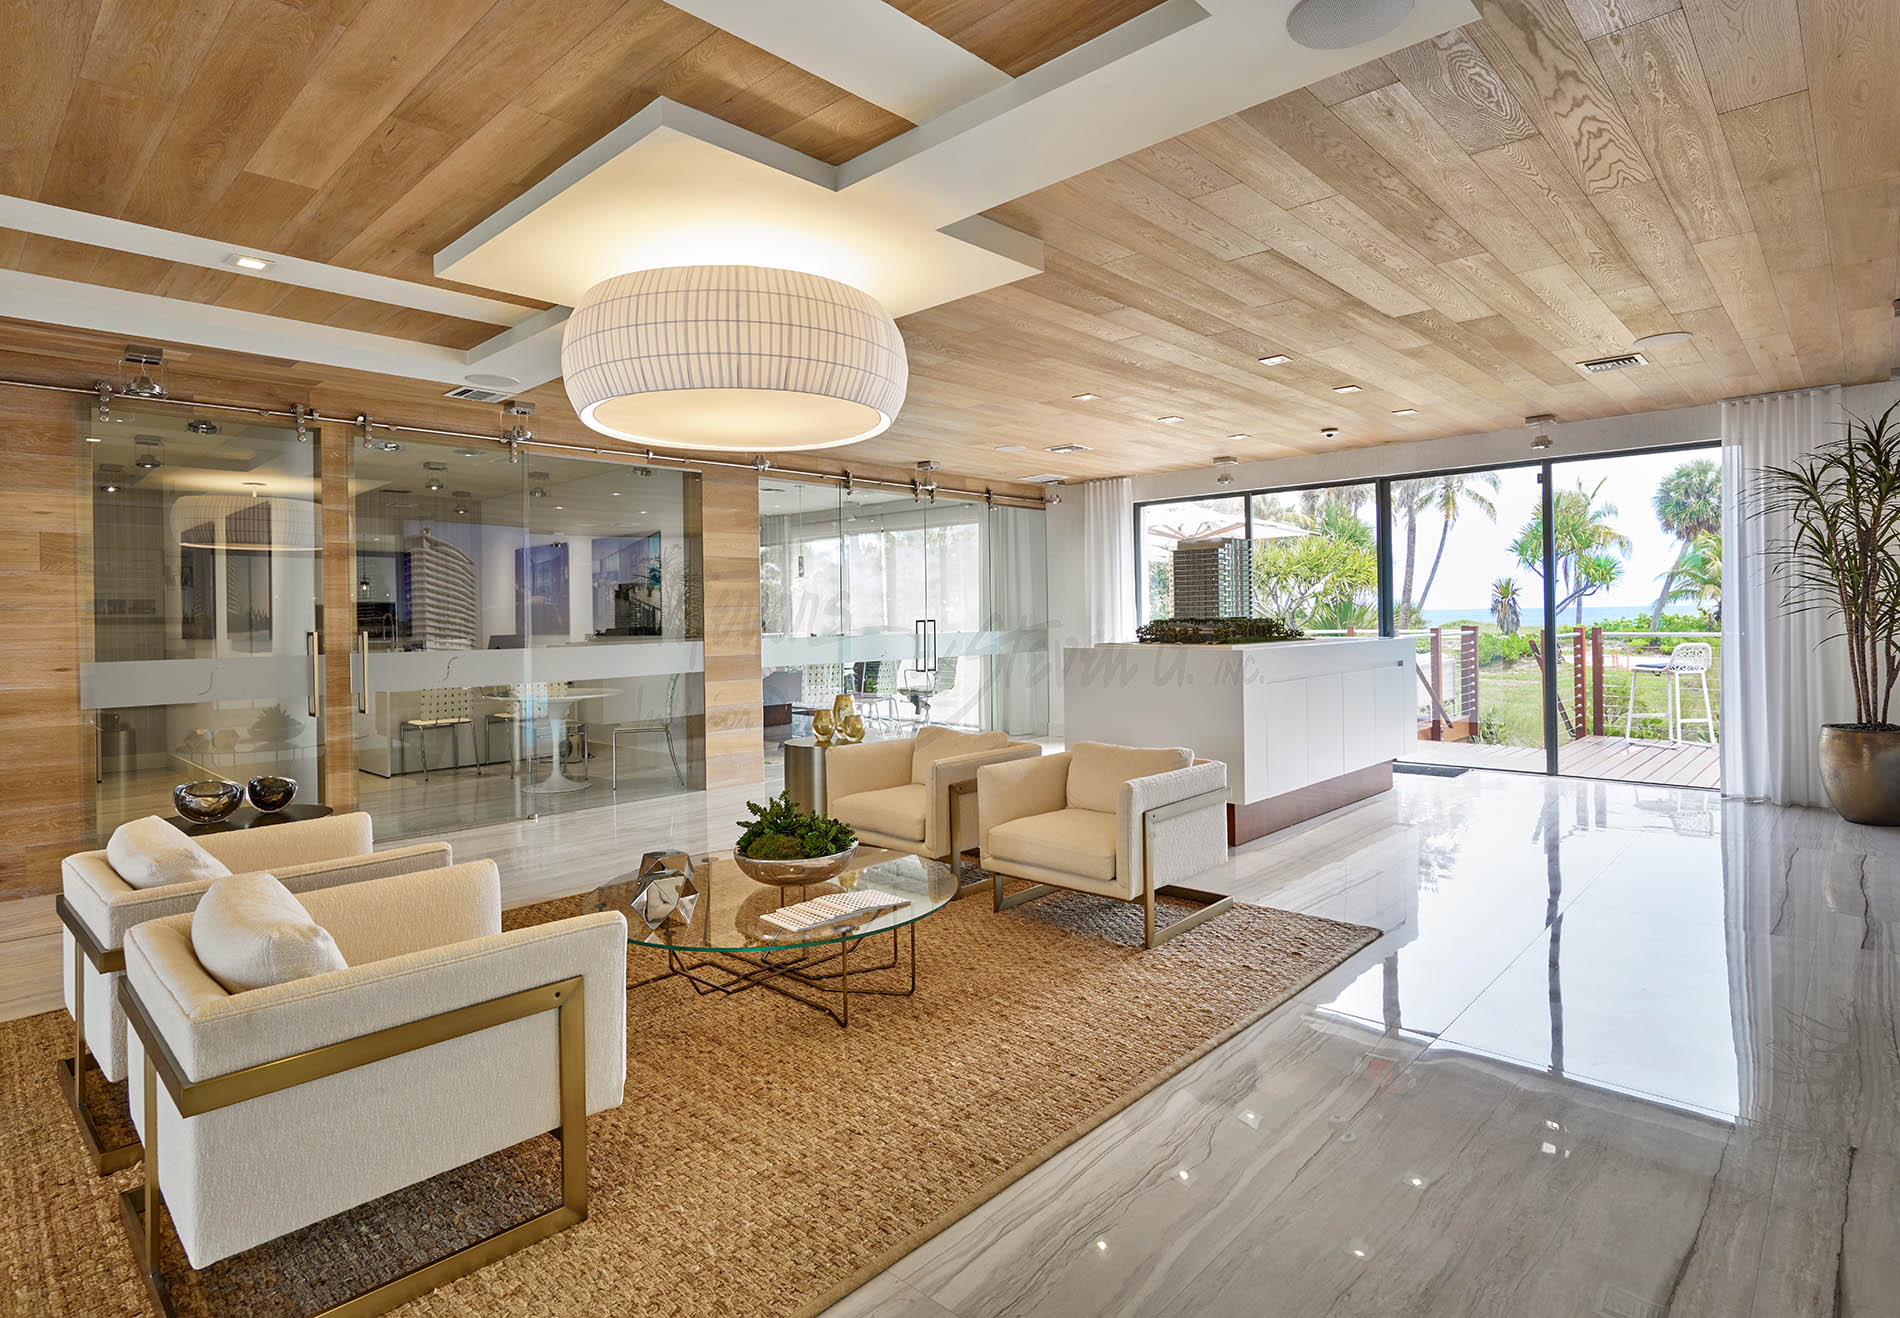 Best Ways to Create a Great Impression through Commercial Interior Design